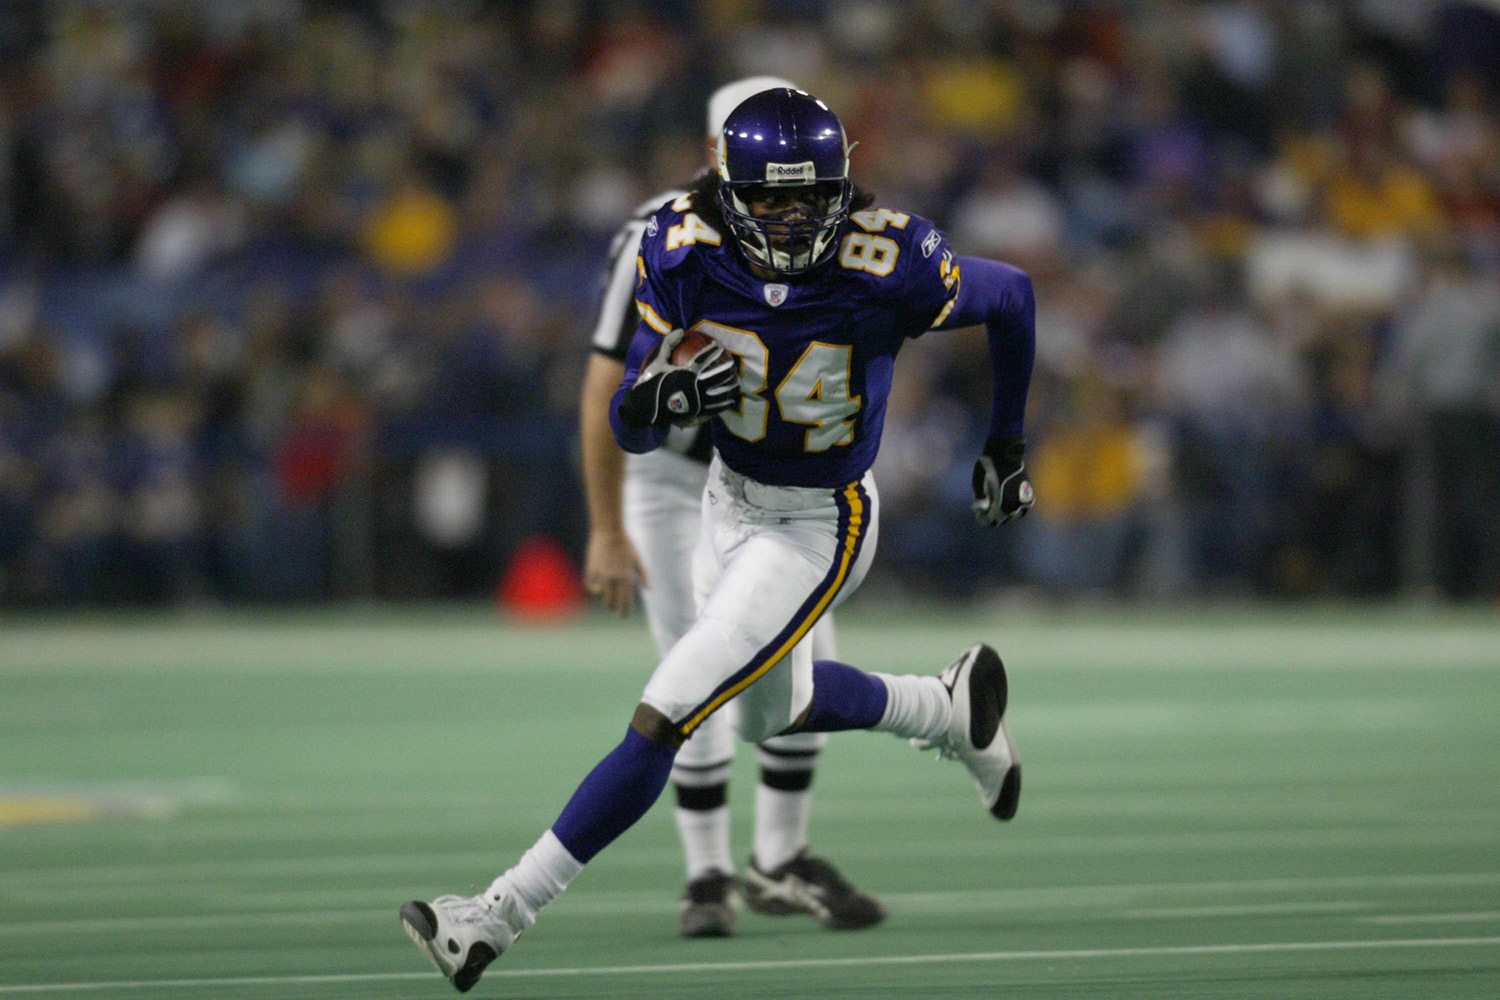 Arguably one of the greatest wide receivers of all-time, Randy Moss first came into the league when he was drafted with the 21st overall pick of the 1998 NFL Draft. Moss has played for five different teams throughout his tenure, piling up Pro-Bowl awards (7) and claiming various NFL records (22) along the way. (*Moss' time was calculated before the NFL implemented electronic timing to improve accuracy.)